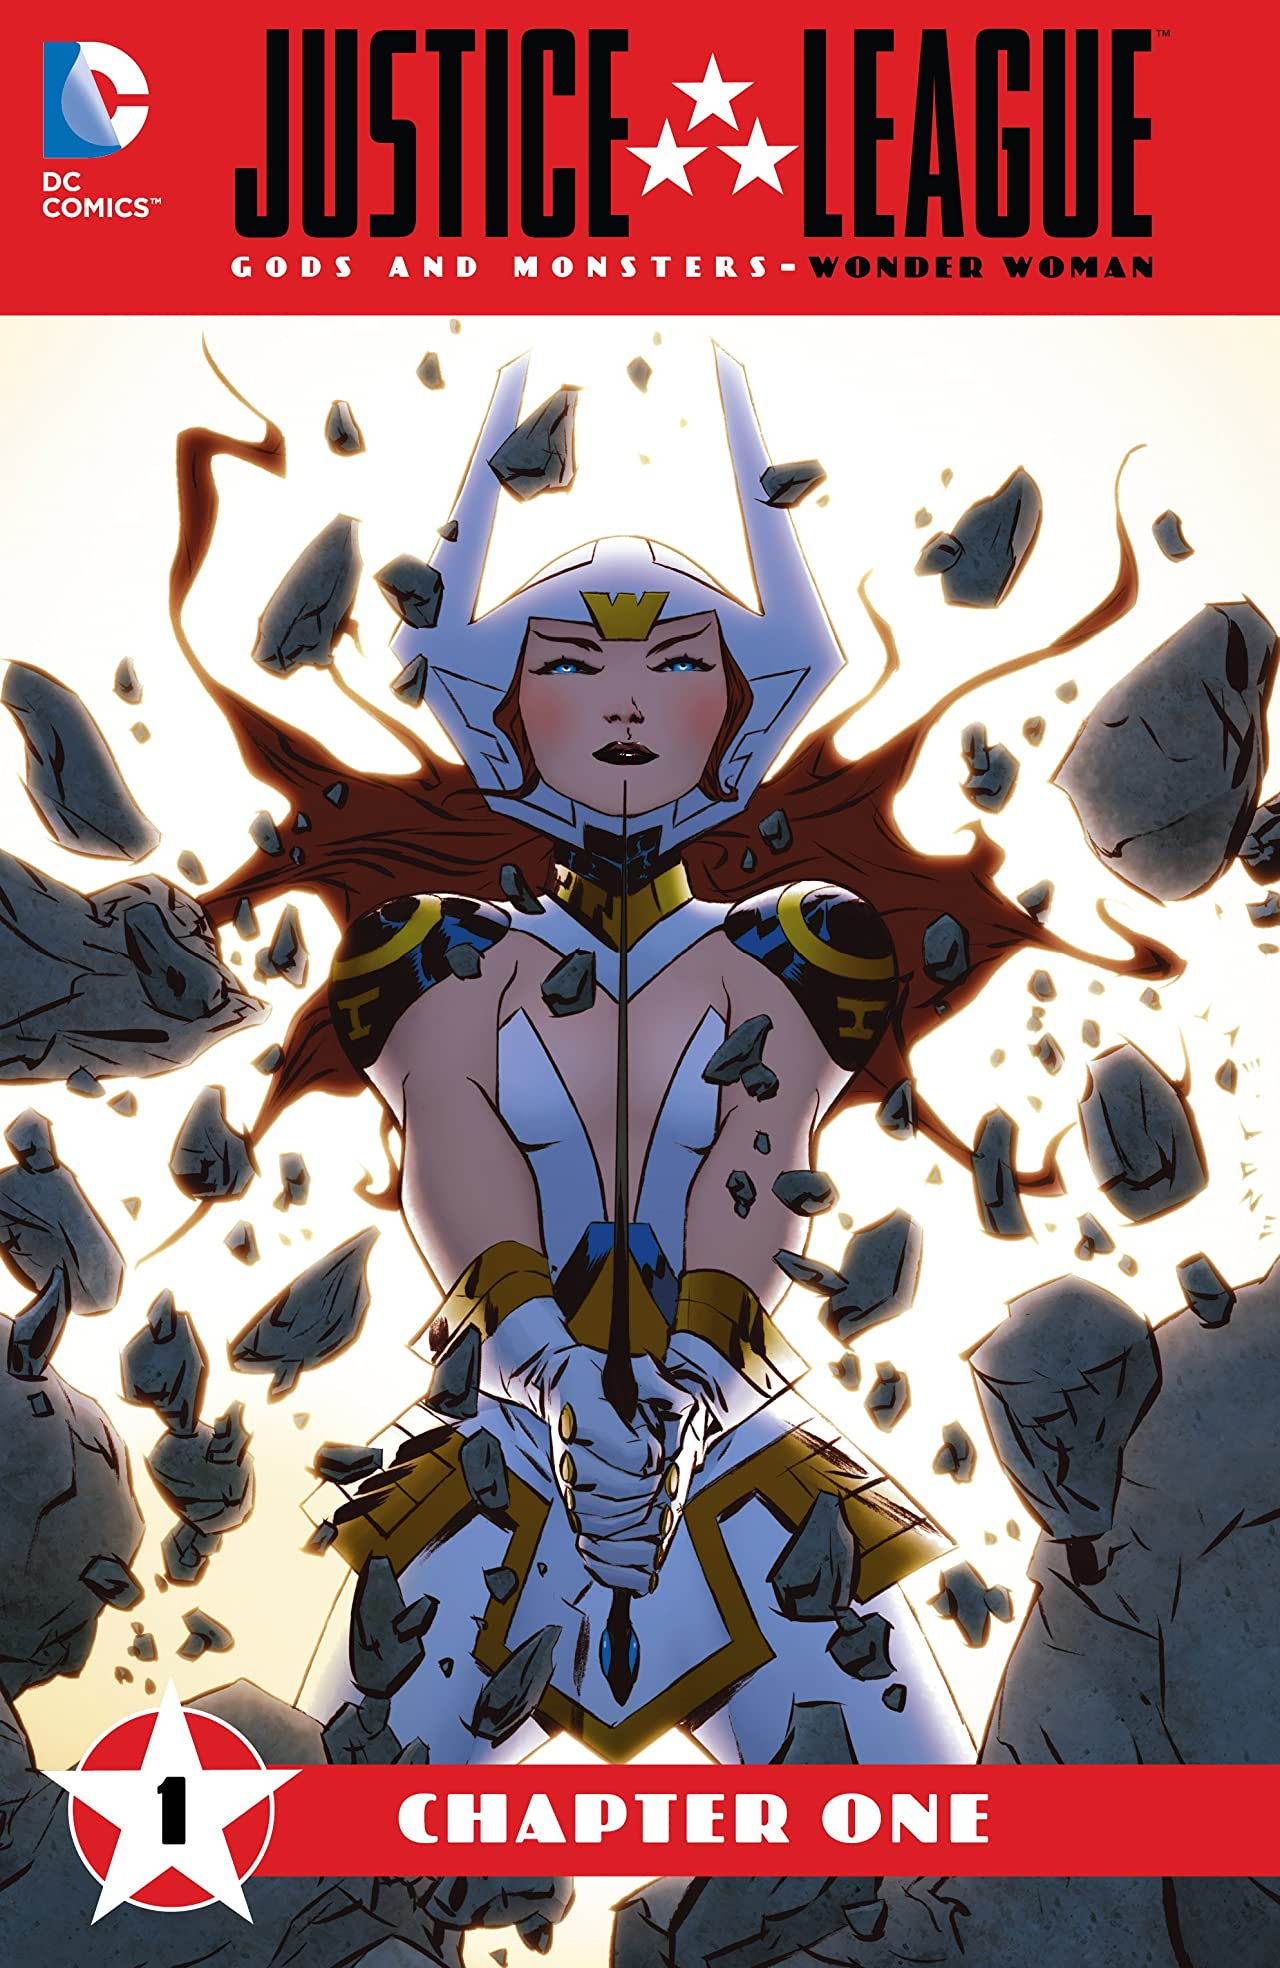 Justice League: Gods & Monsters - Wonder Woman (2015) #1